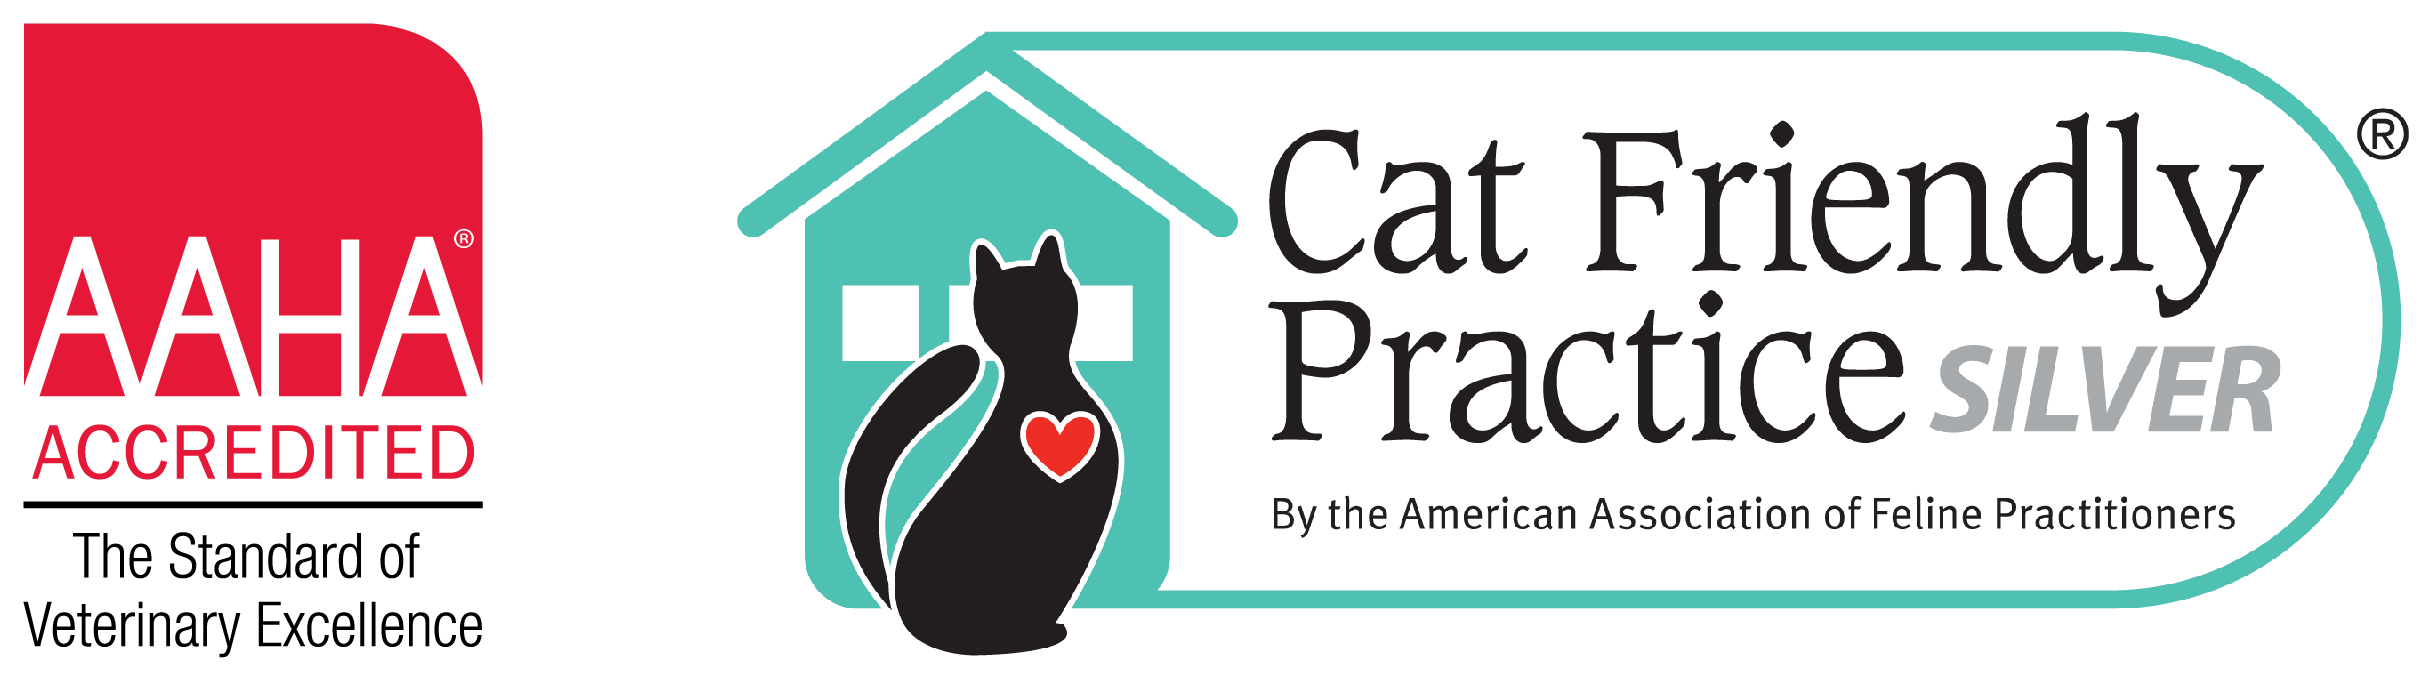 AAHA-accredited and Cat Friendly Practice silver level logo